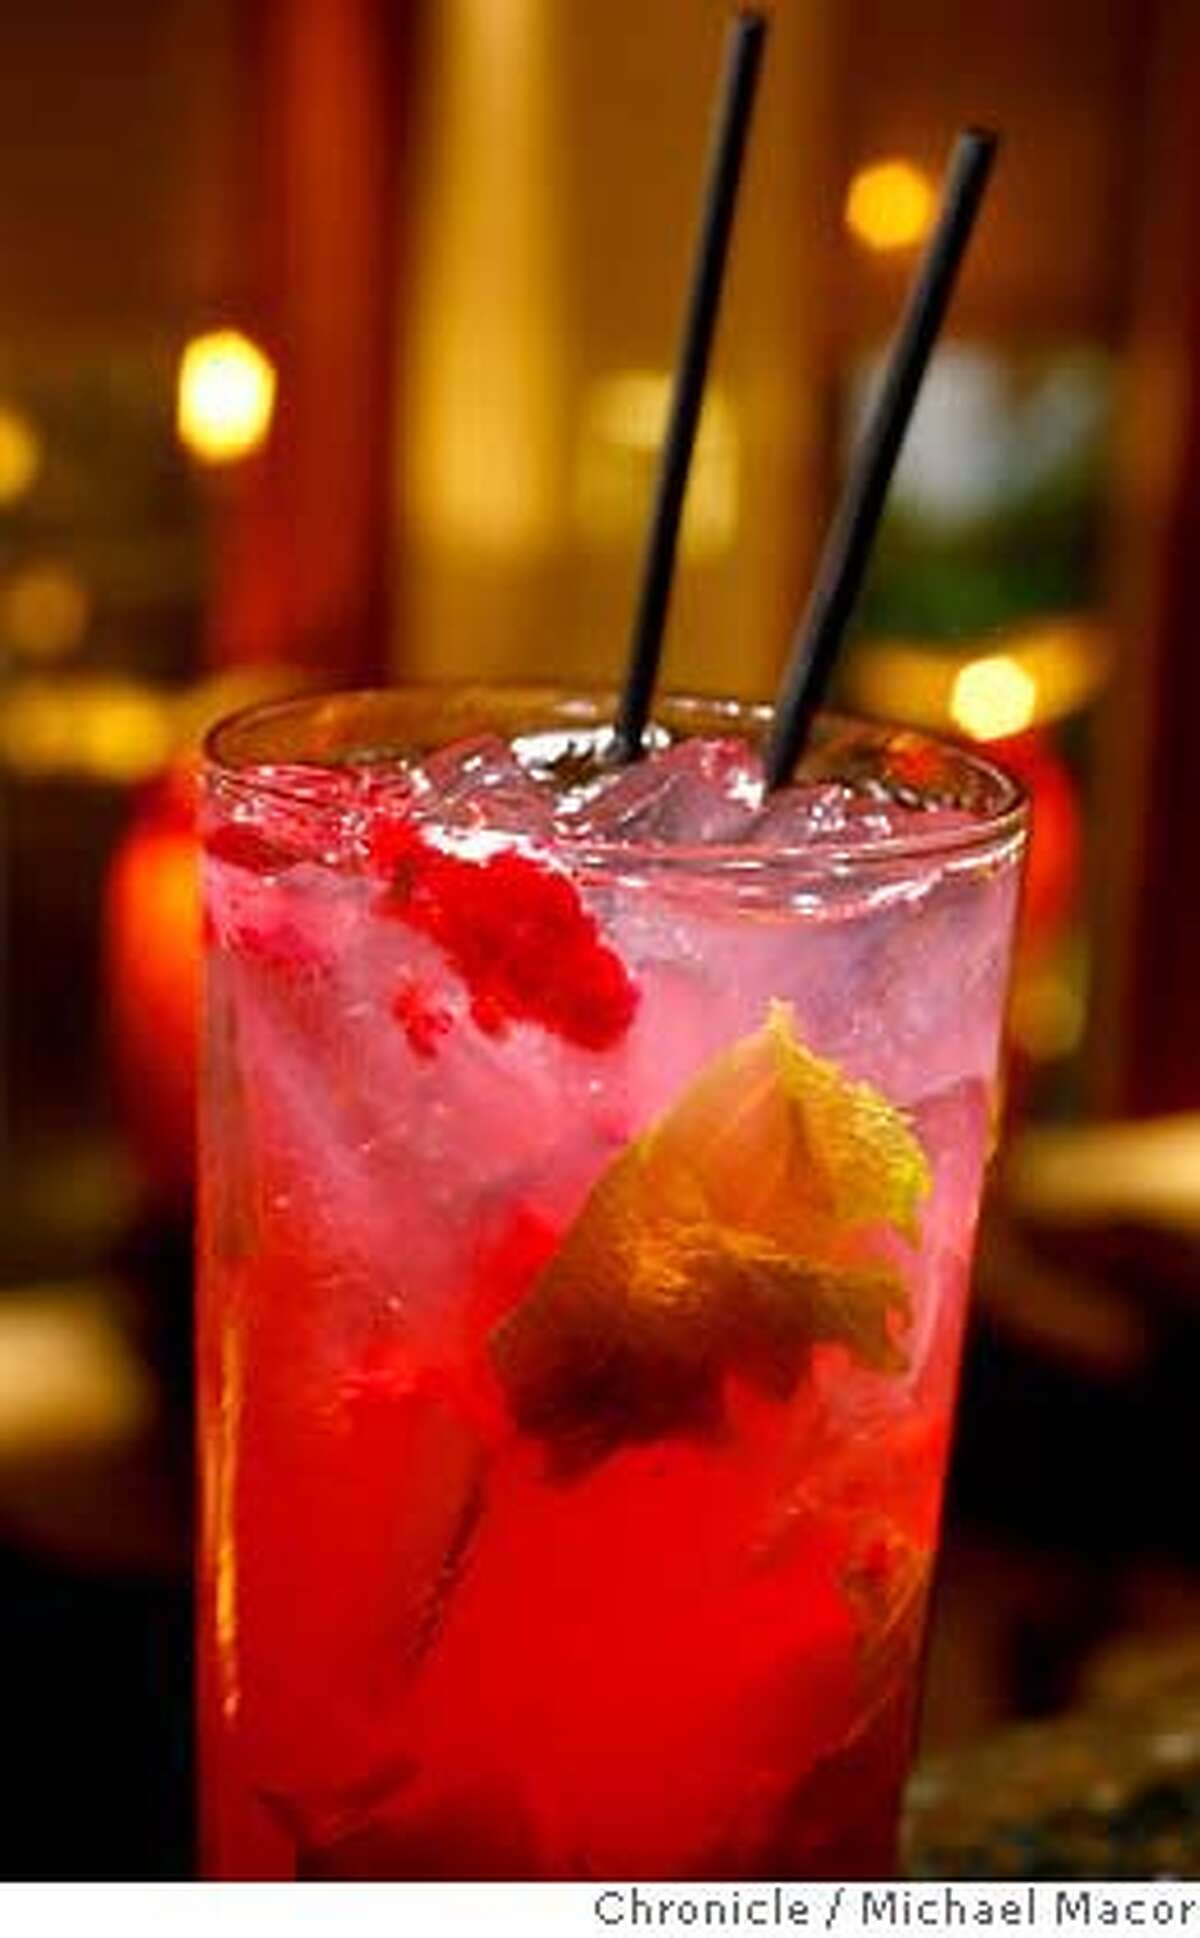 """barbites16_013_mac.jpg """"Raspberry-Shiso Ginger Ale - Raspberries and Shiso leaves muddled with simple syrup and sweet and sour, mixed with house infused Ginger Vodka with a slash of soda. 96 Hours Bar Bites feature the scene, people, food and drink at Anzu restaurant's lounge. This is a comfortable living-room style lounge and bar area before you enter the restaurant. Photographed in, San Francisco, Ca, on 7/31/07. Photo by: Michael Macor/ The Chronicle Mandatory credit for Photographer and San Francisco Chronicle No sales/ Magazines Out"""